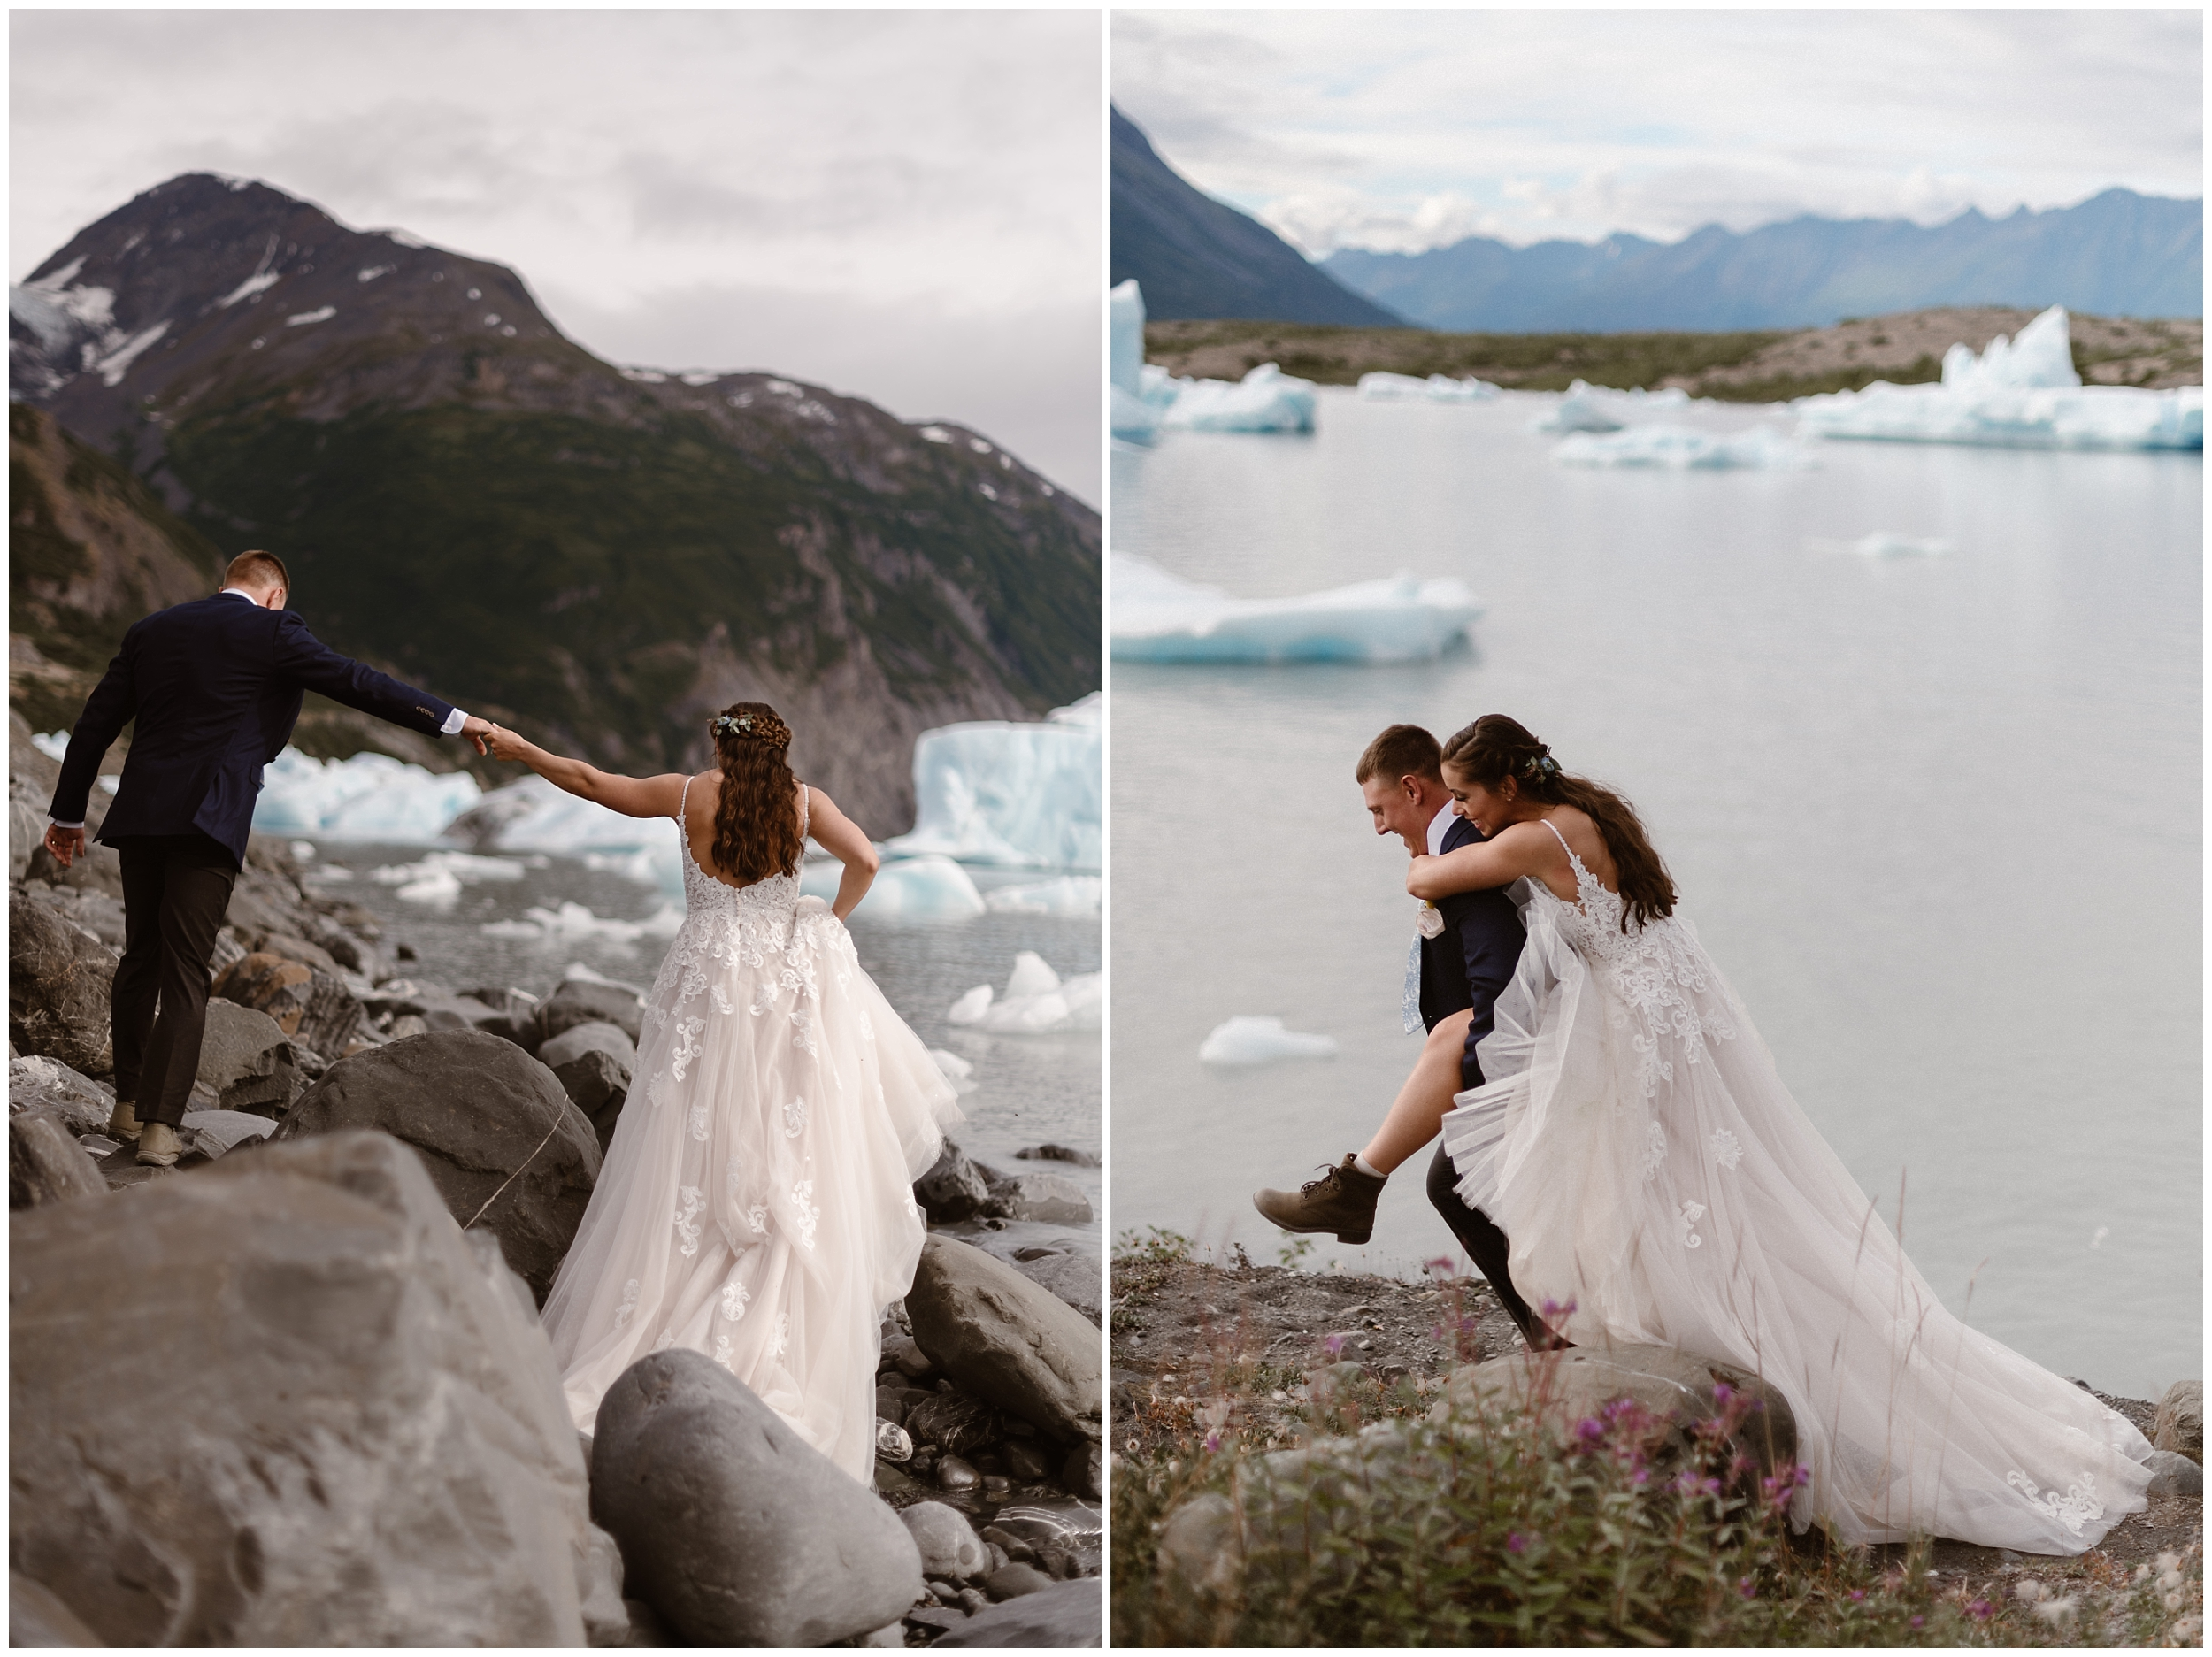 In this split image, Jordyn and Connor, the bride and groom, adventure near the glacial lake. In the photo on the left, Connor steps up to rock higher than Jordyn, but continues to hold her hand as she follows along at a lower level. In the picture on the right, Jordyn climbs onto Connor's back and they explore the rocky beach. Her wedding dress trails behind them and her hiking boots stick out.